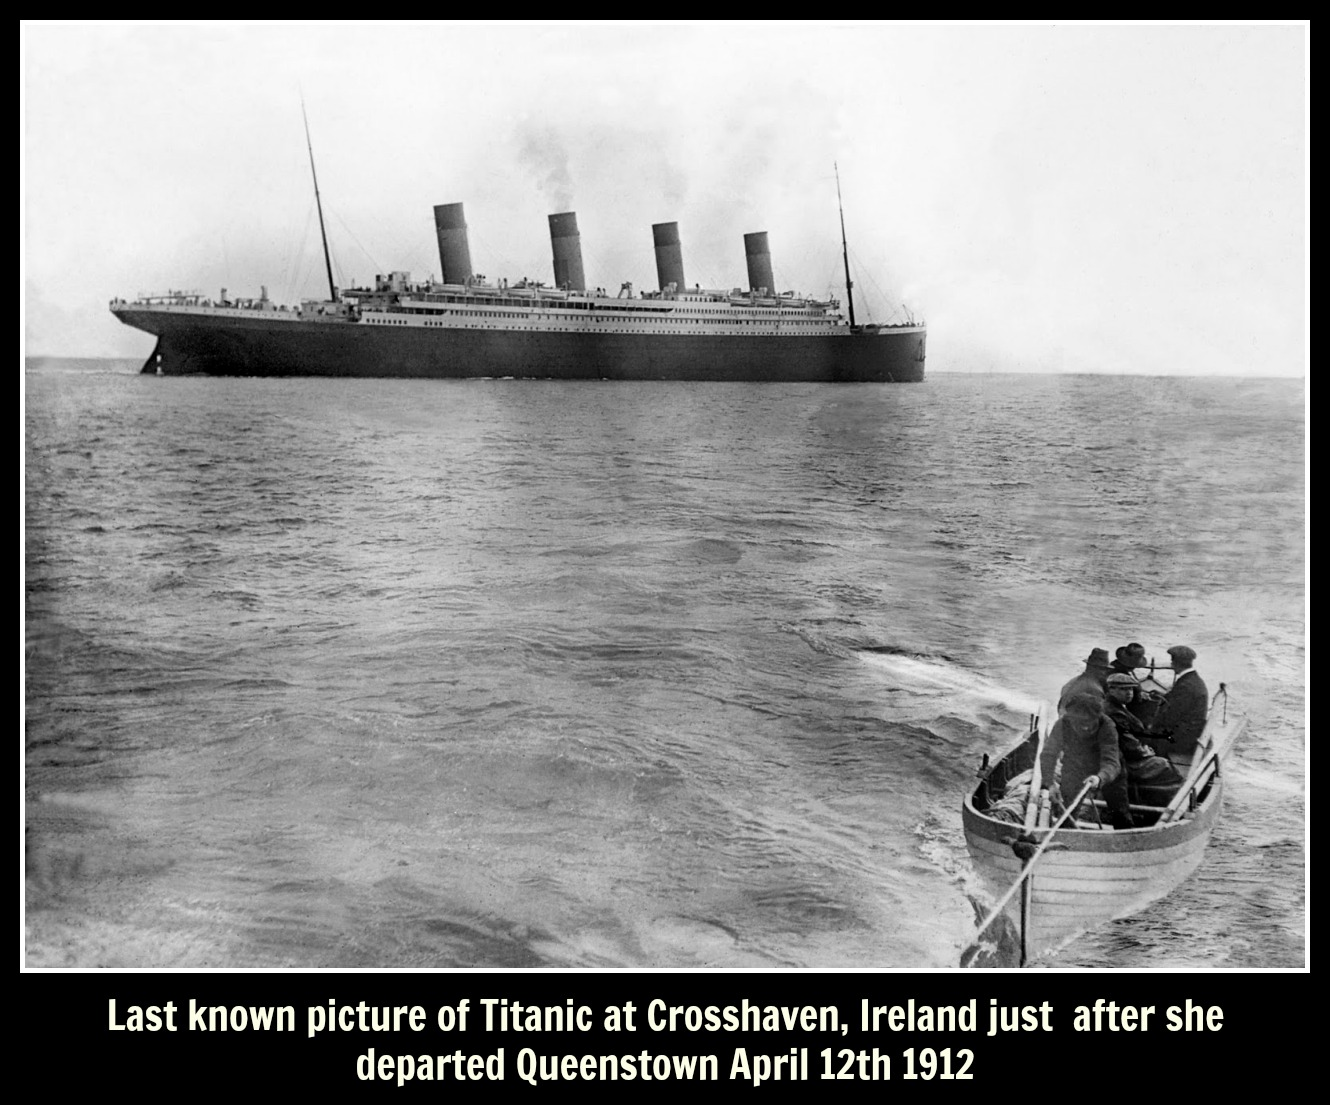 titanic The last known photo of the RMS Titanic afloat text